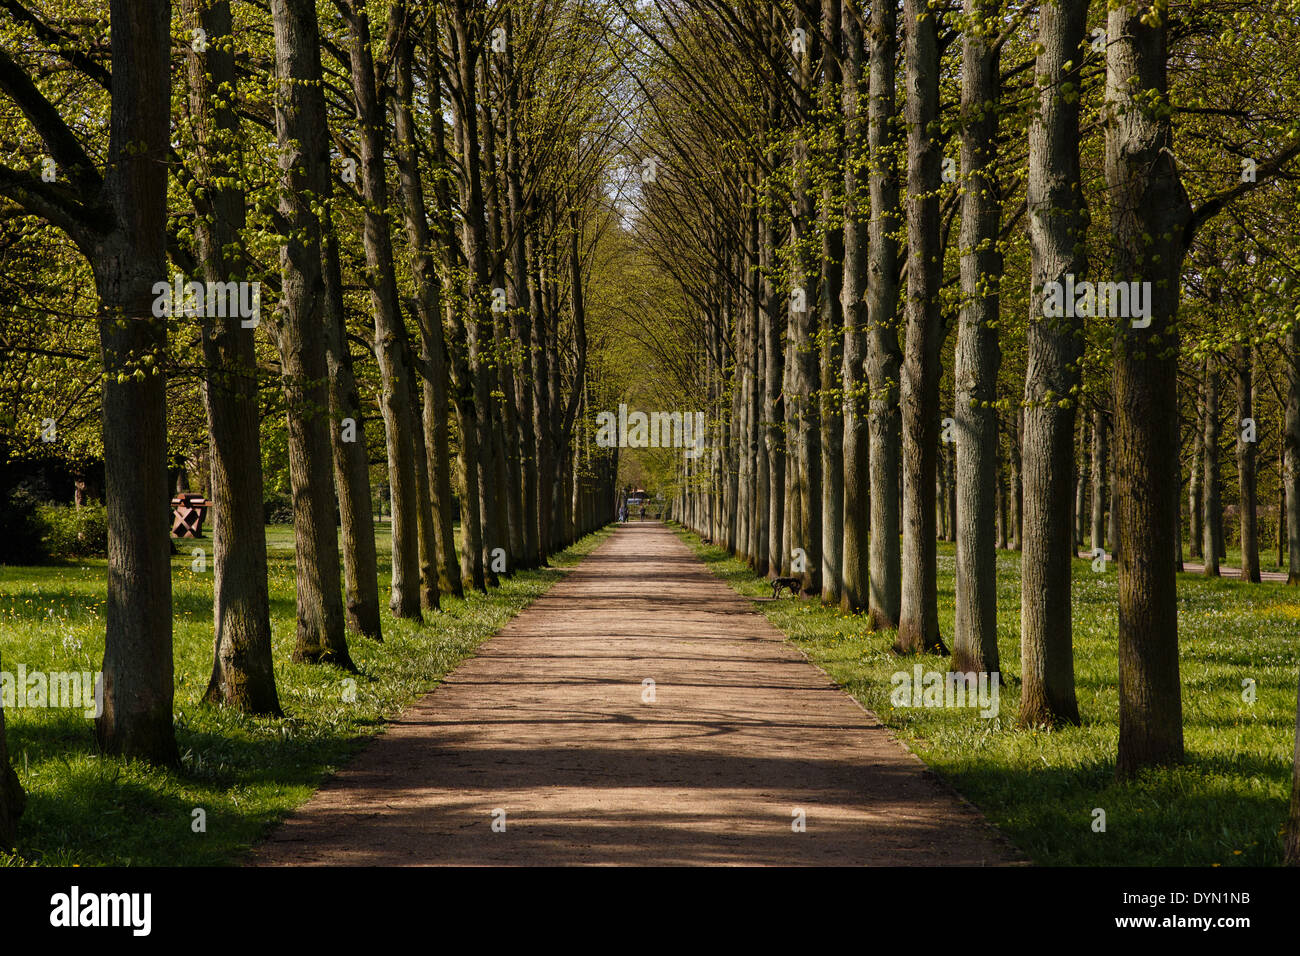 A Photograph Of An Alley Of Linden Trees In The French Garden Stock